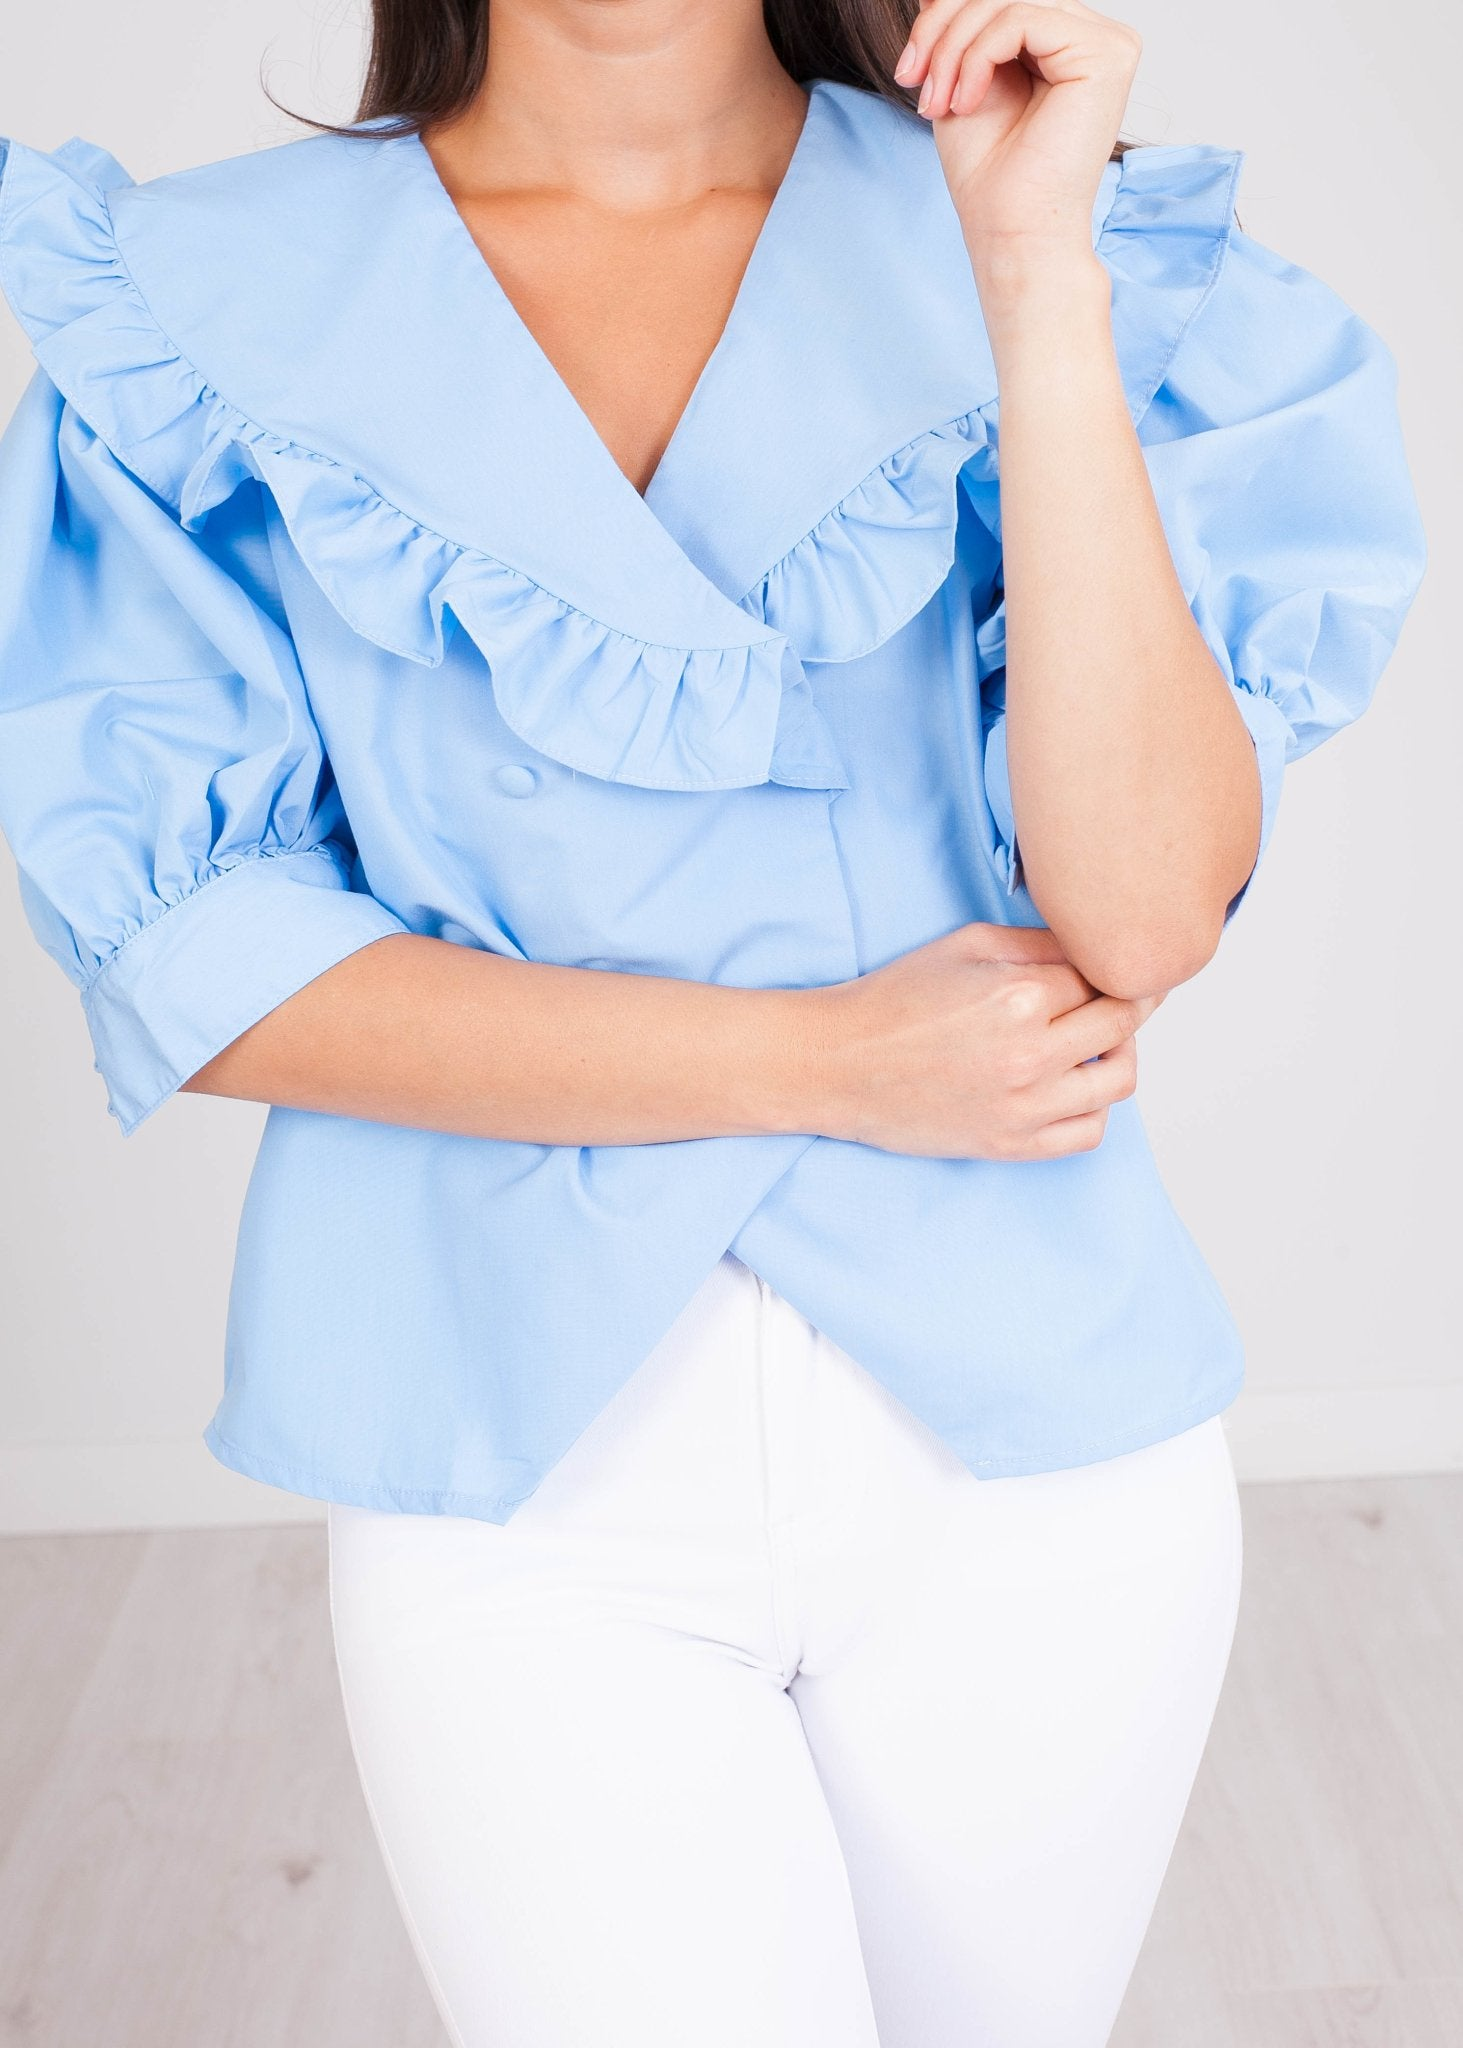 FiFi Blue Top - The Walk in Wardrobe